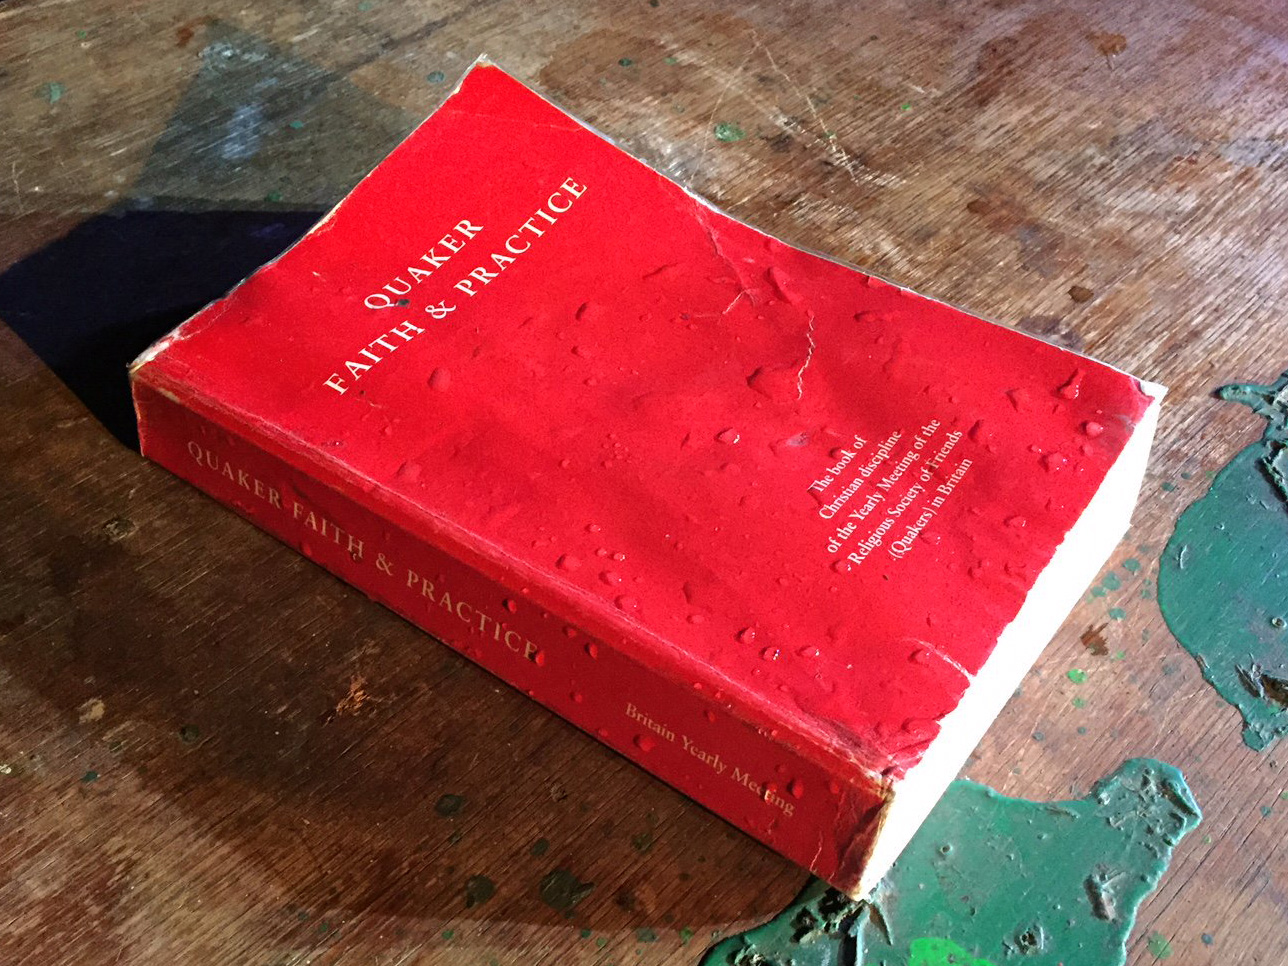 A water-soaked book, with a red cover, sits on a paint-splattered wooden surface.